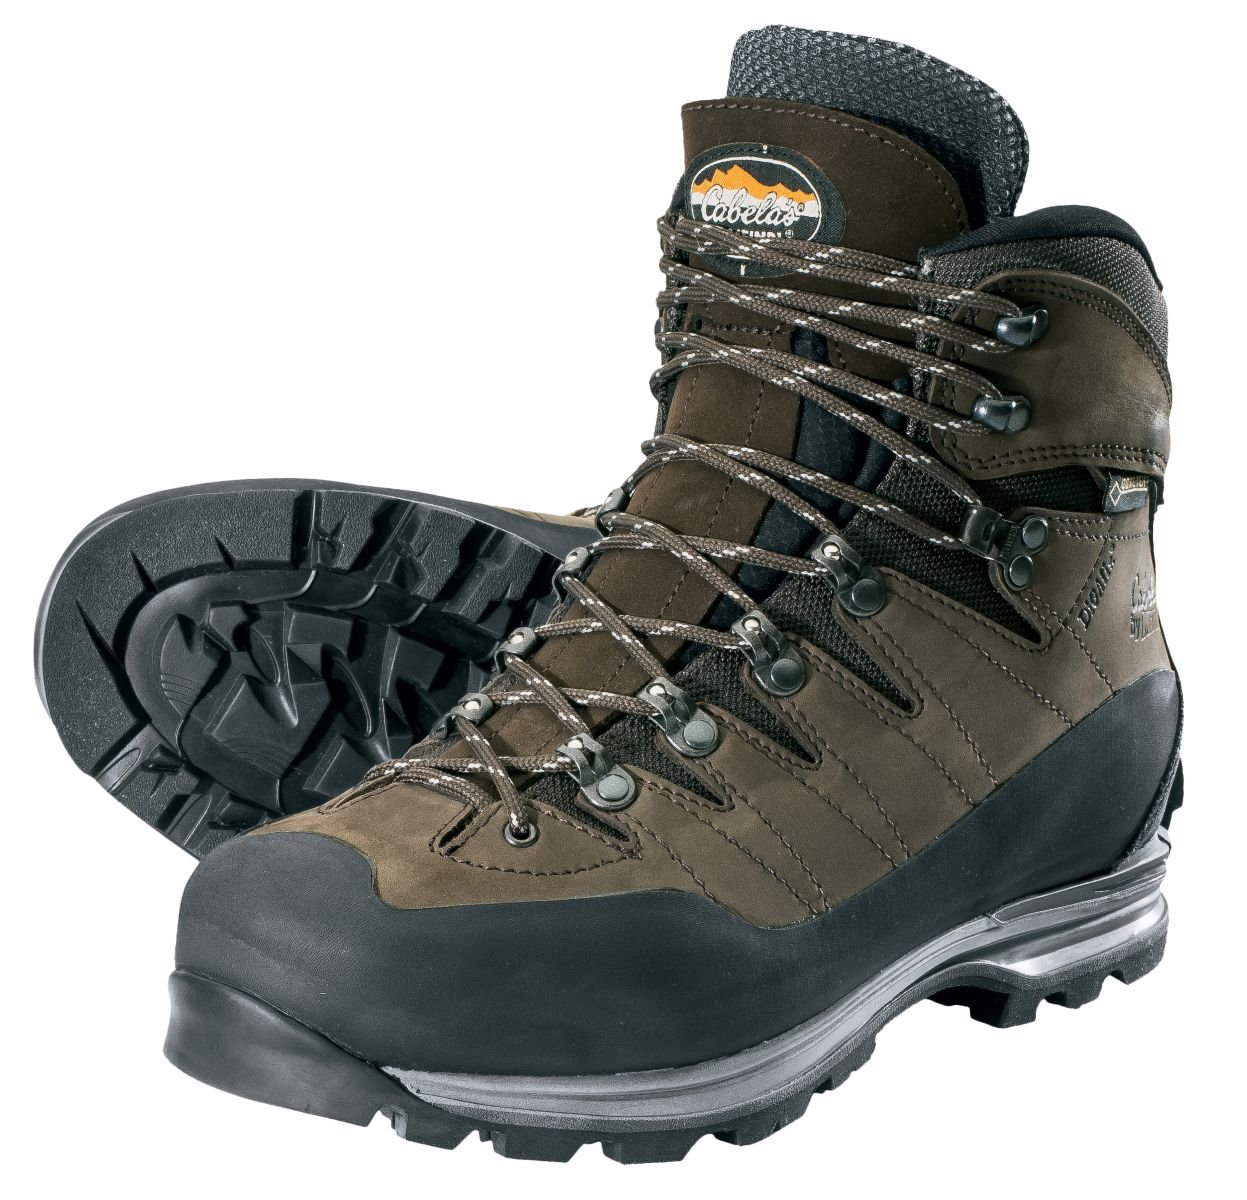 5597ade7bae Cabela's Meindl Men's Western Slope Hunting Boots with GORE-TEX - $329.99  (Free 2-Day S/H over $50)